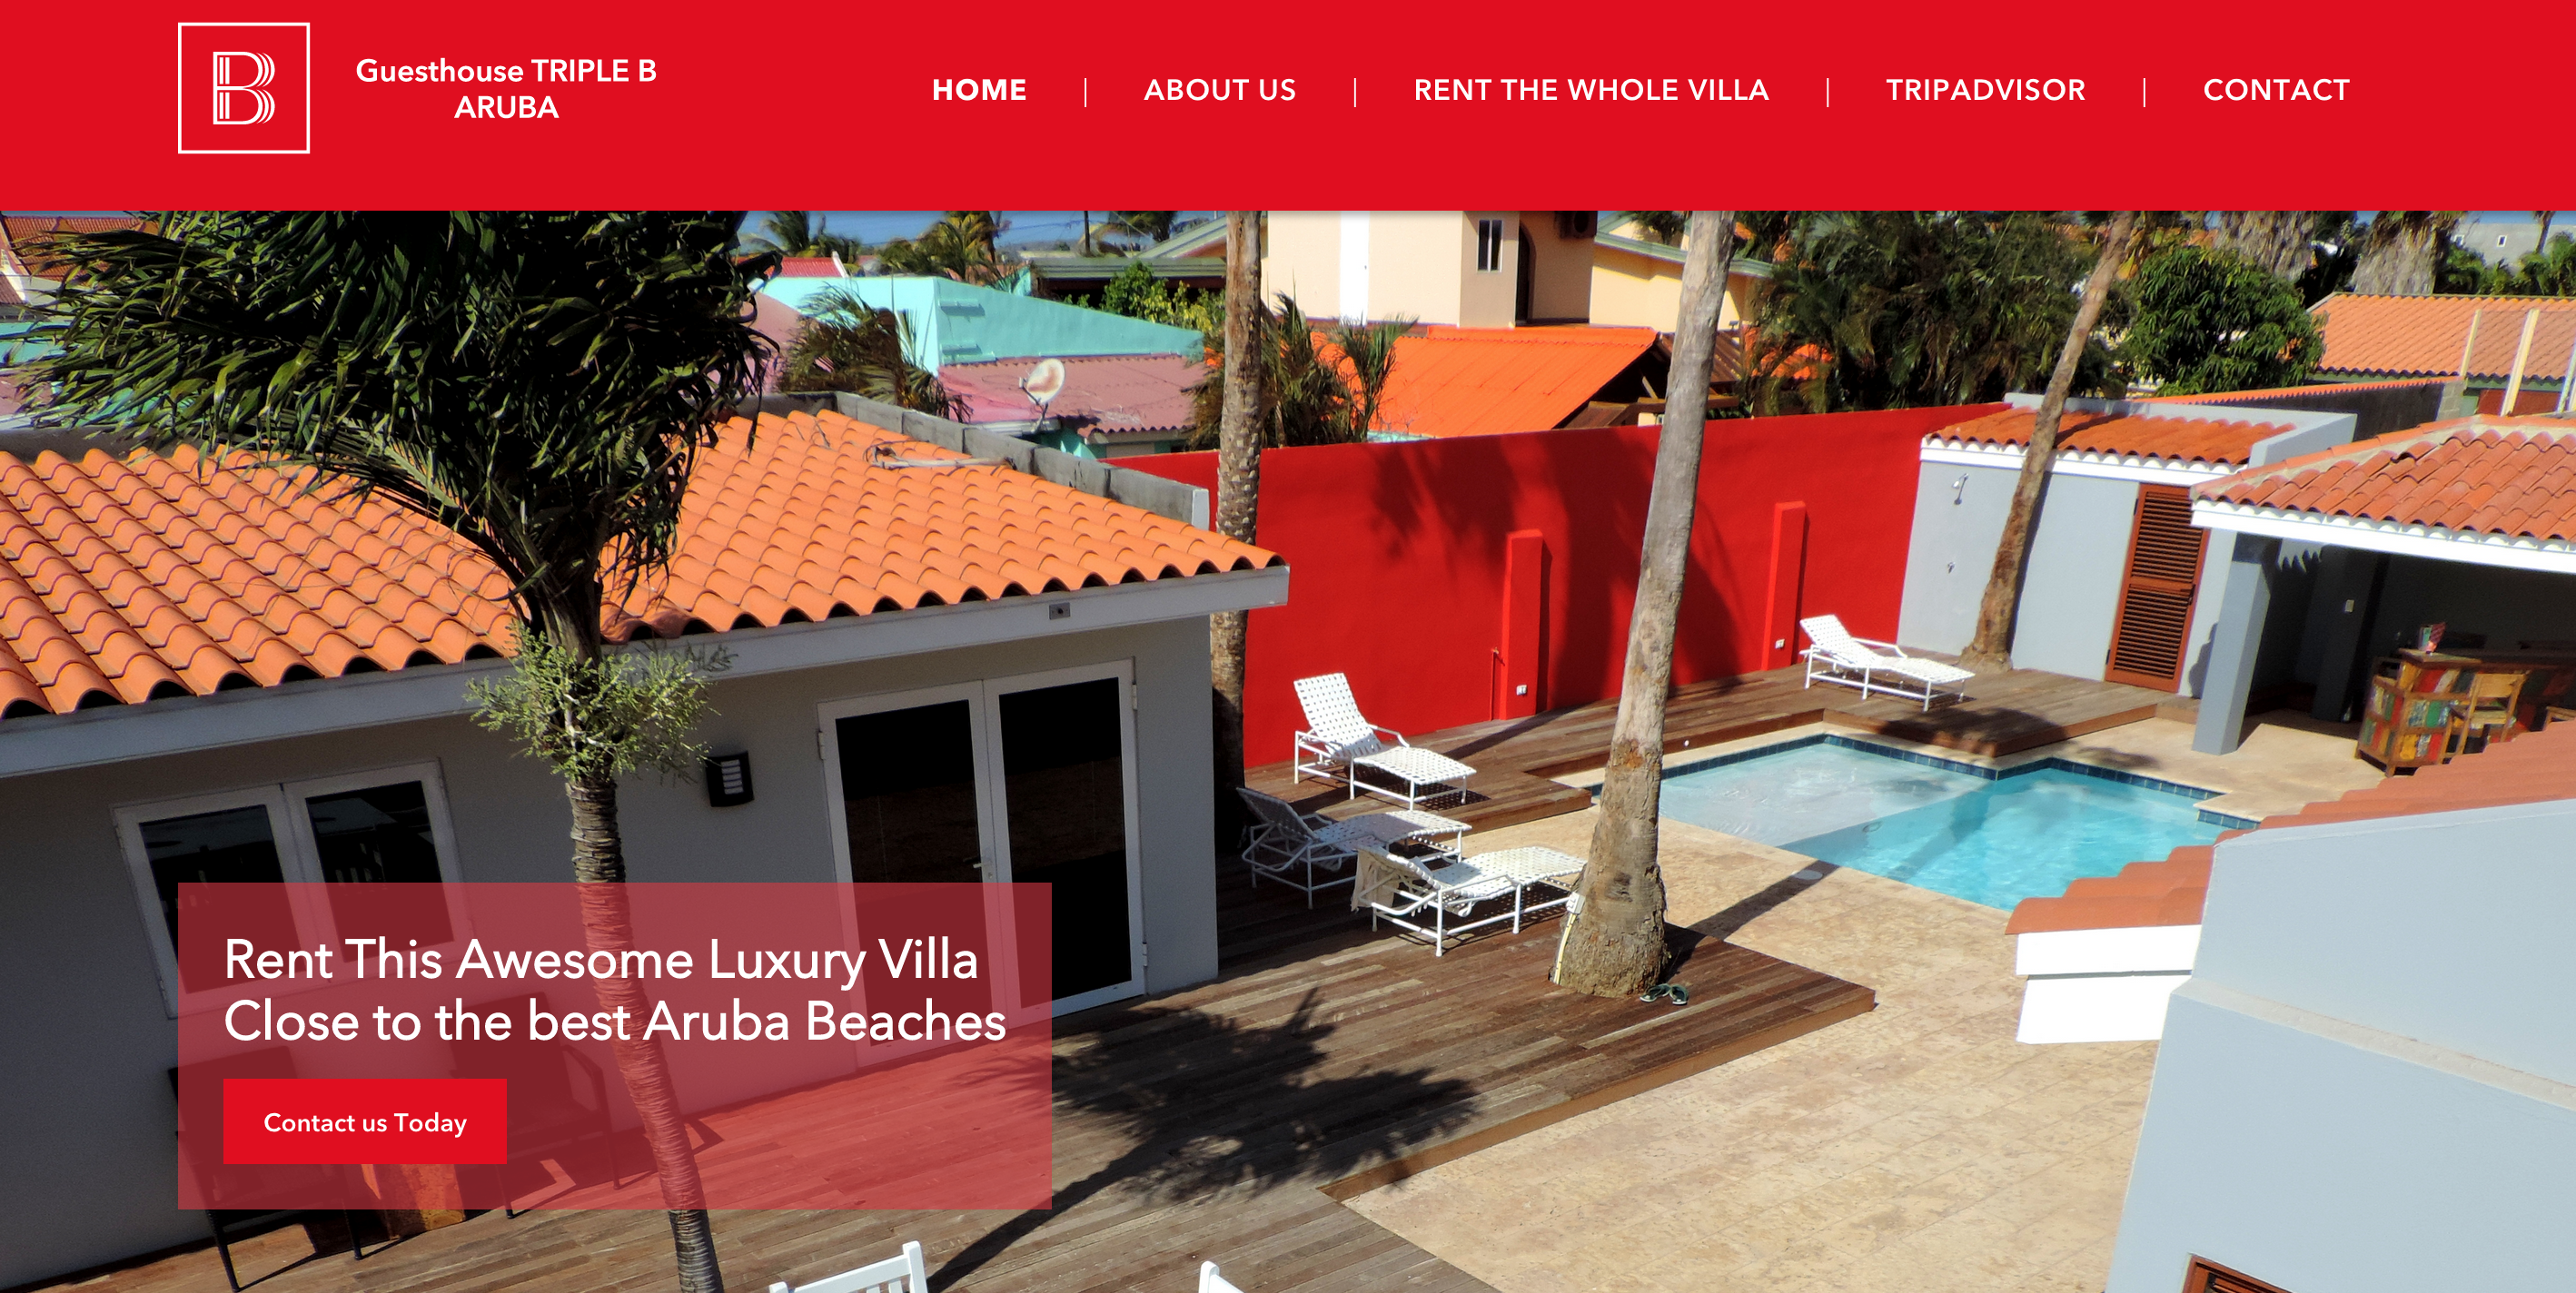 new website triple B aruba